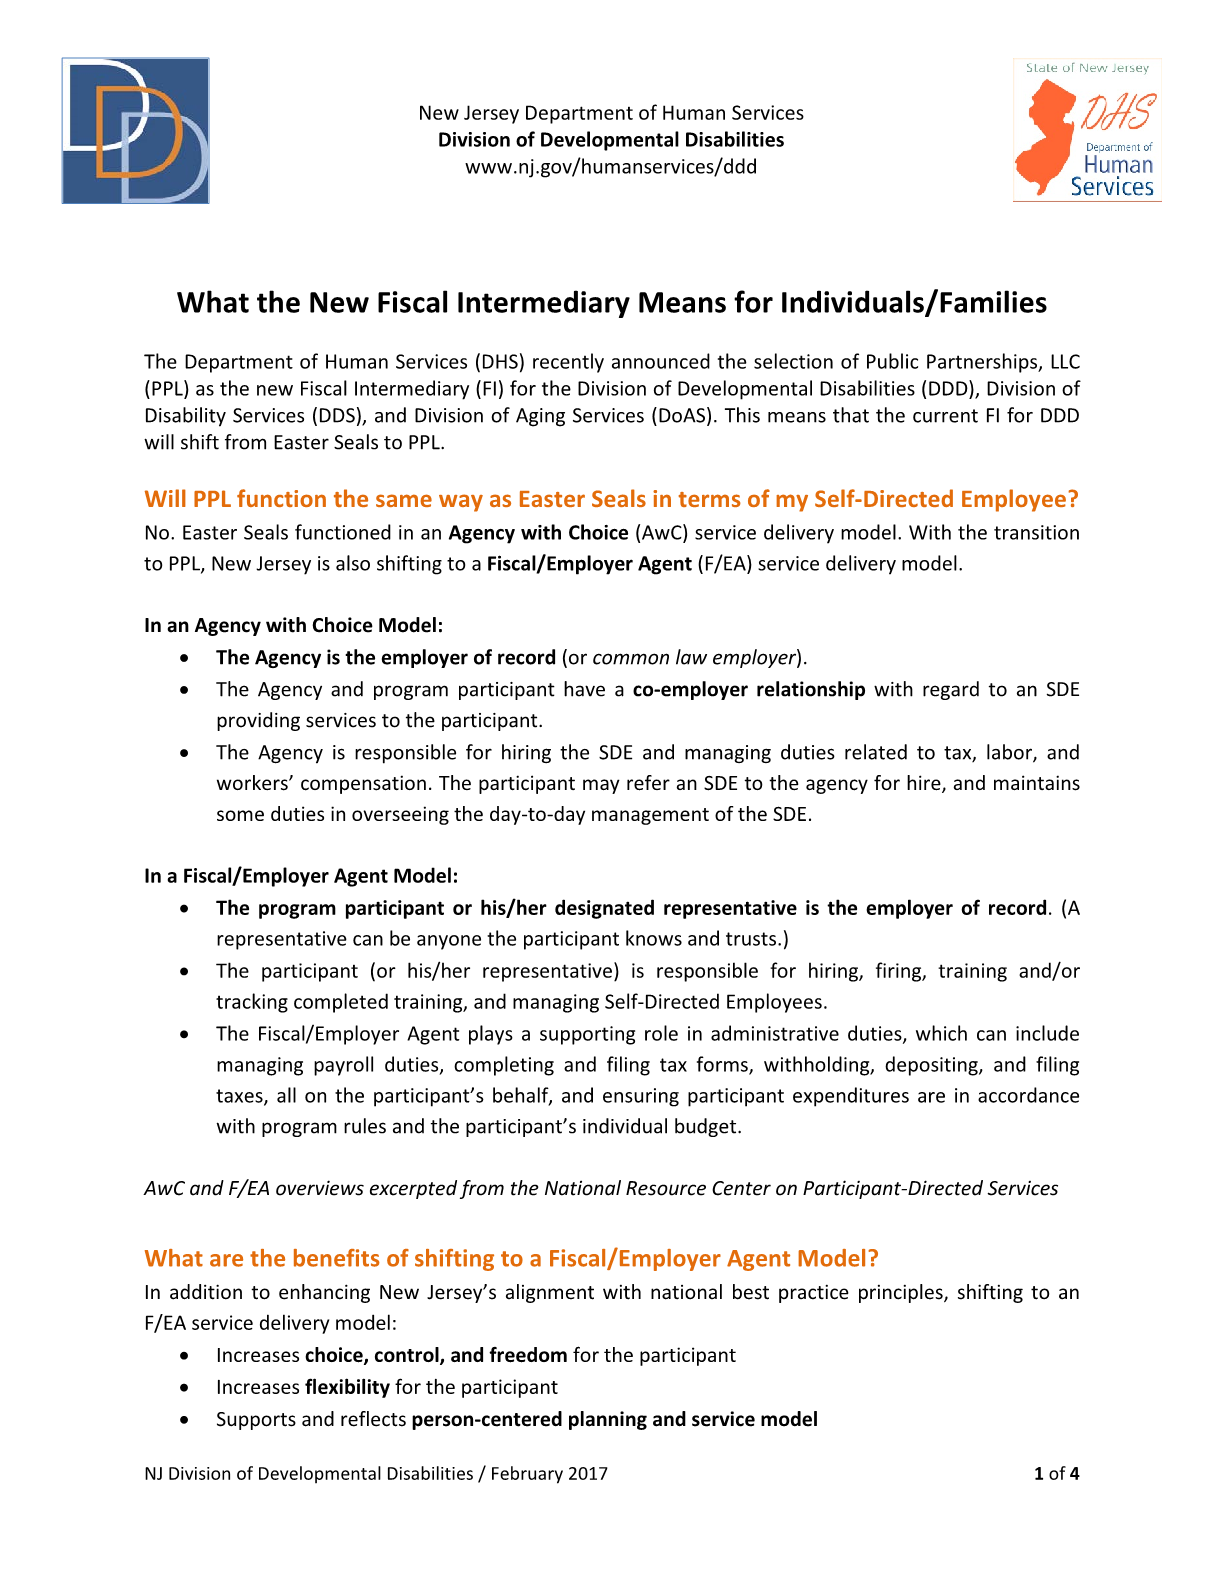 What the New Fiscal Intermediary Means for Individuals/Families (February 2017)